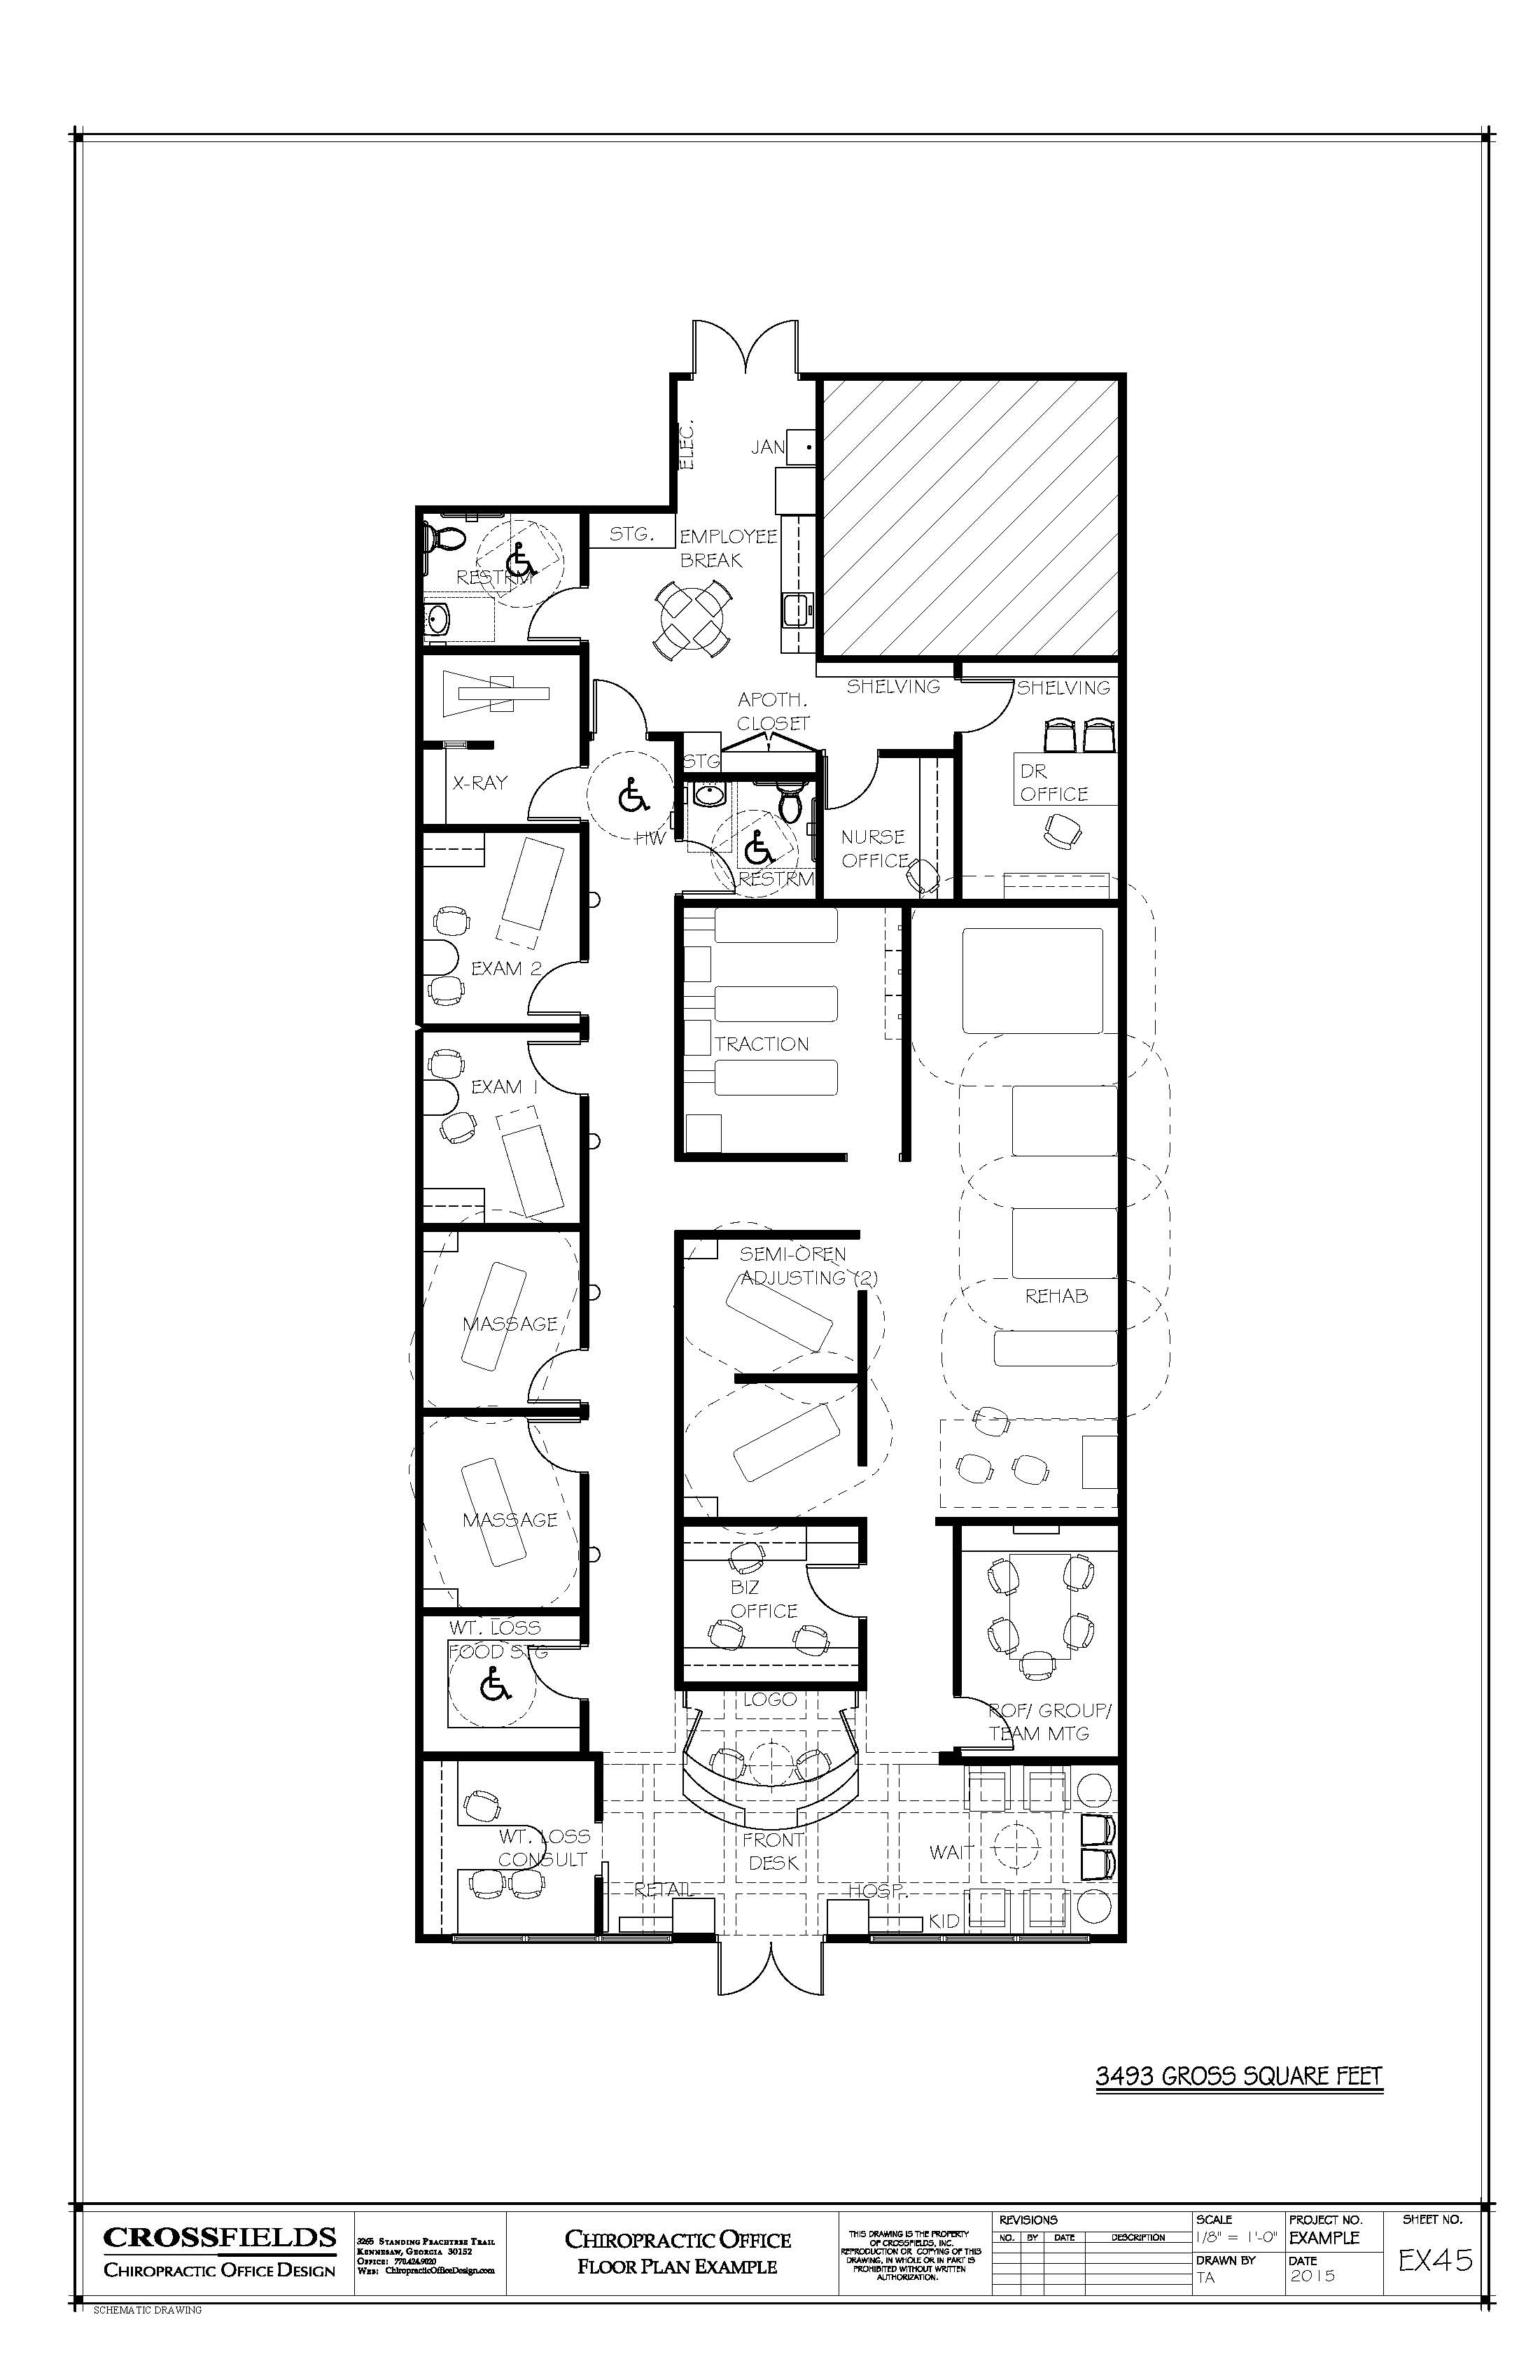 Drawn office hand drawn  Meeting 3 square #Floorplan